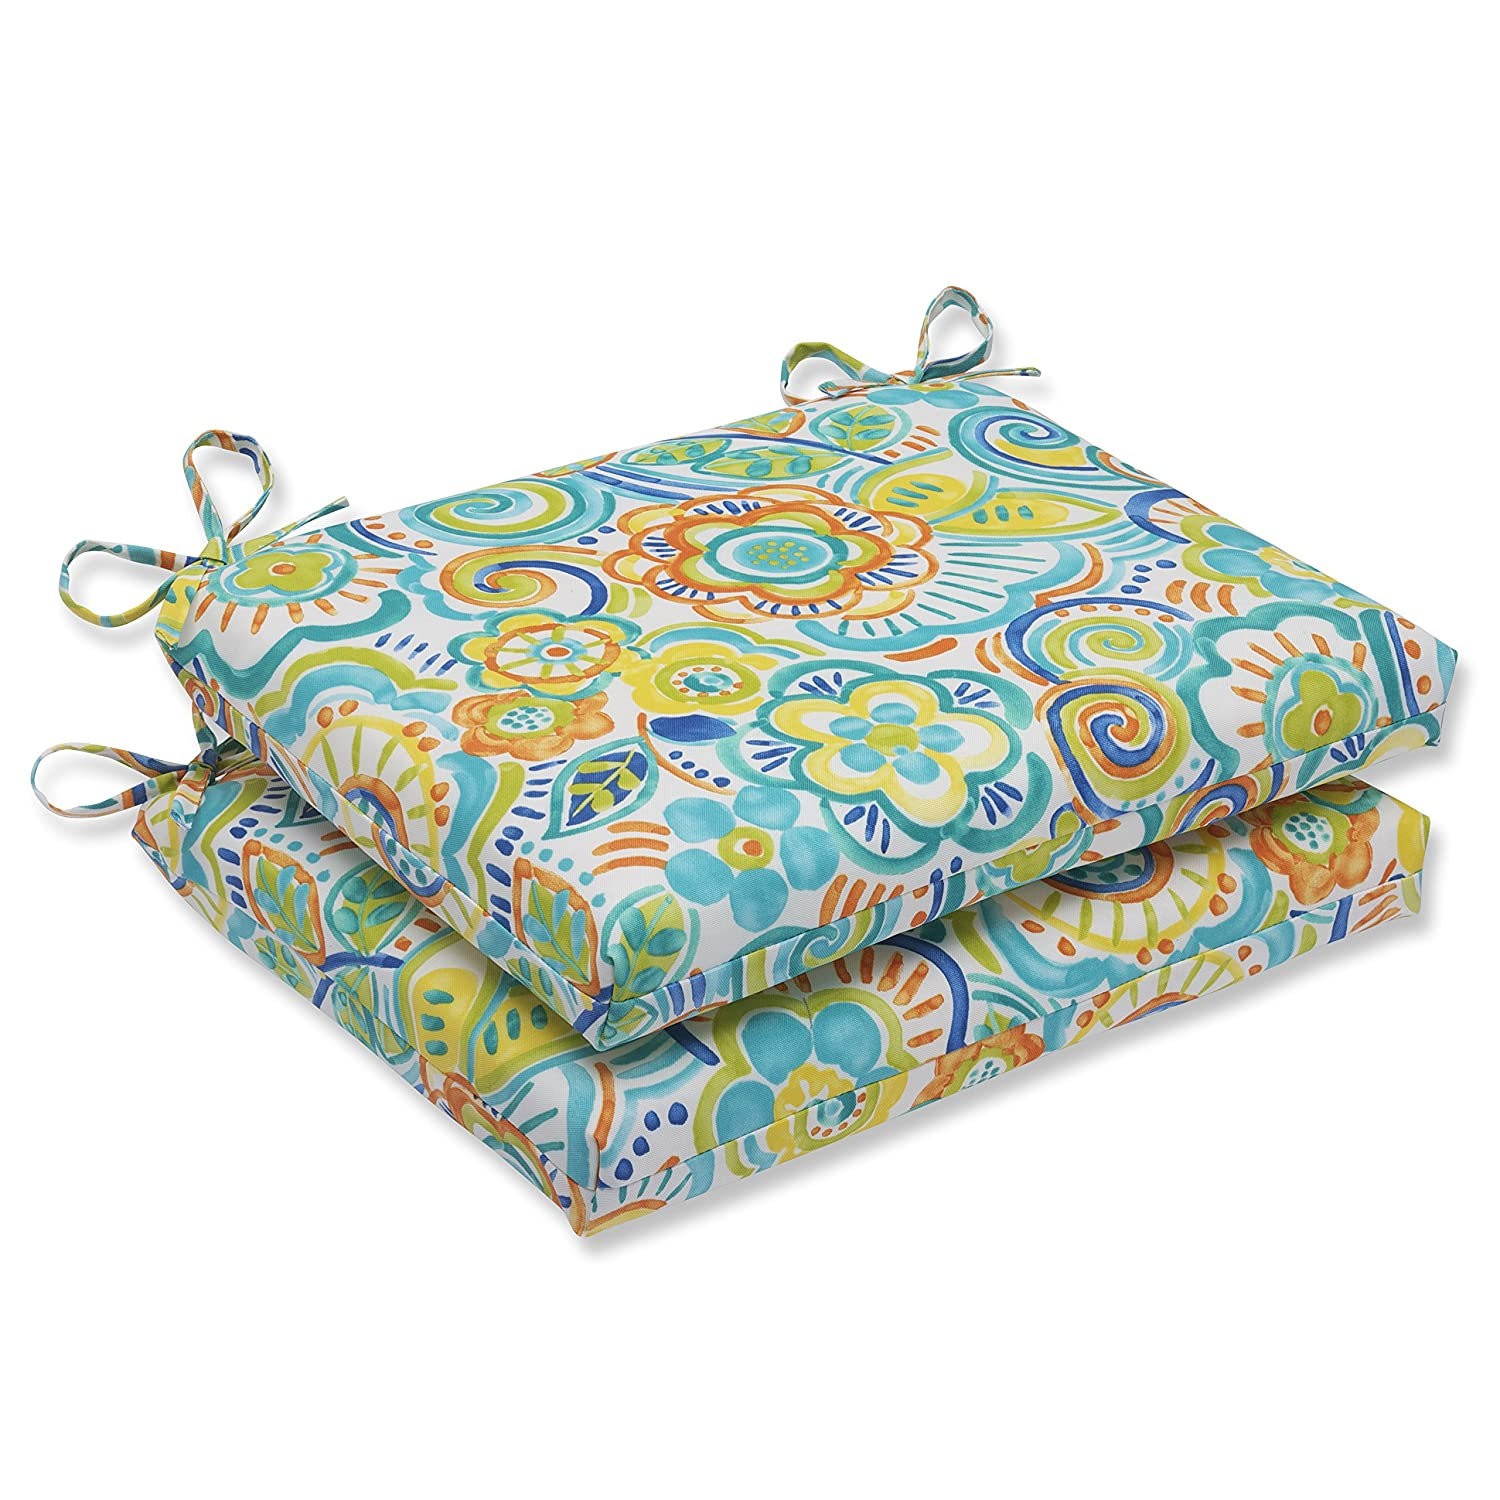 Pillow Perfect Outdoor Bronwood Caribbean Squared Corners Seat Cushion, Multicolored, Set of 2